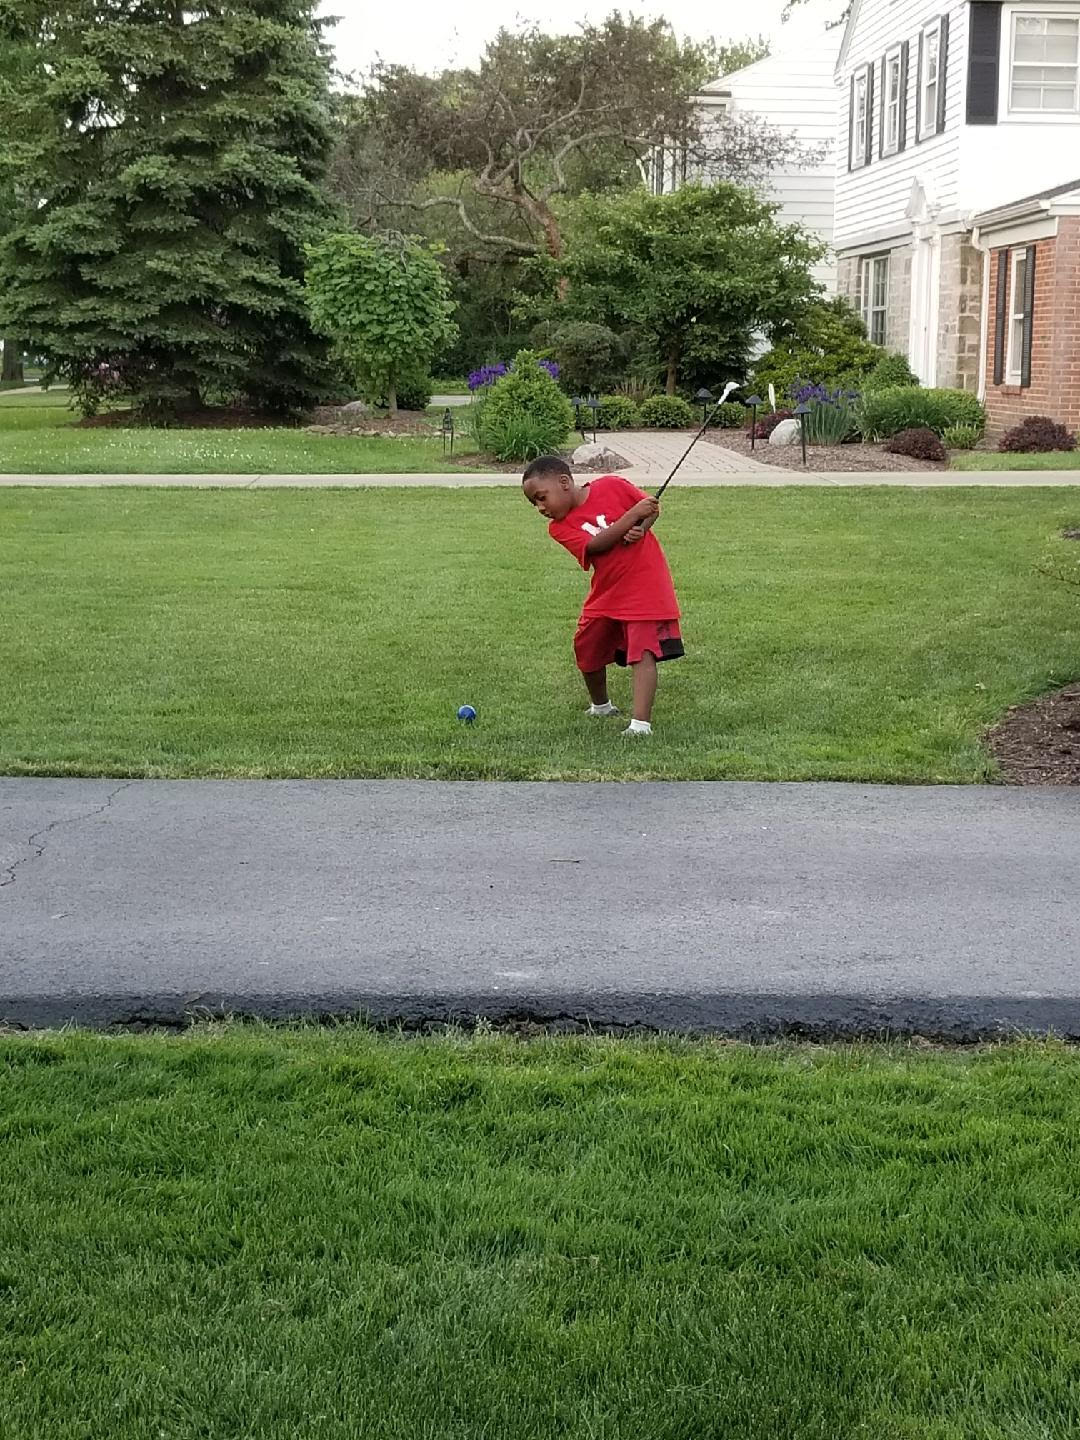 Charlie Sifford's great-grandson, Gregory, loves to play golf, too! Photo courtesy of Annie Sifford.